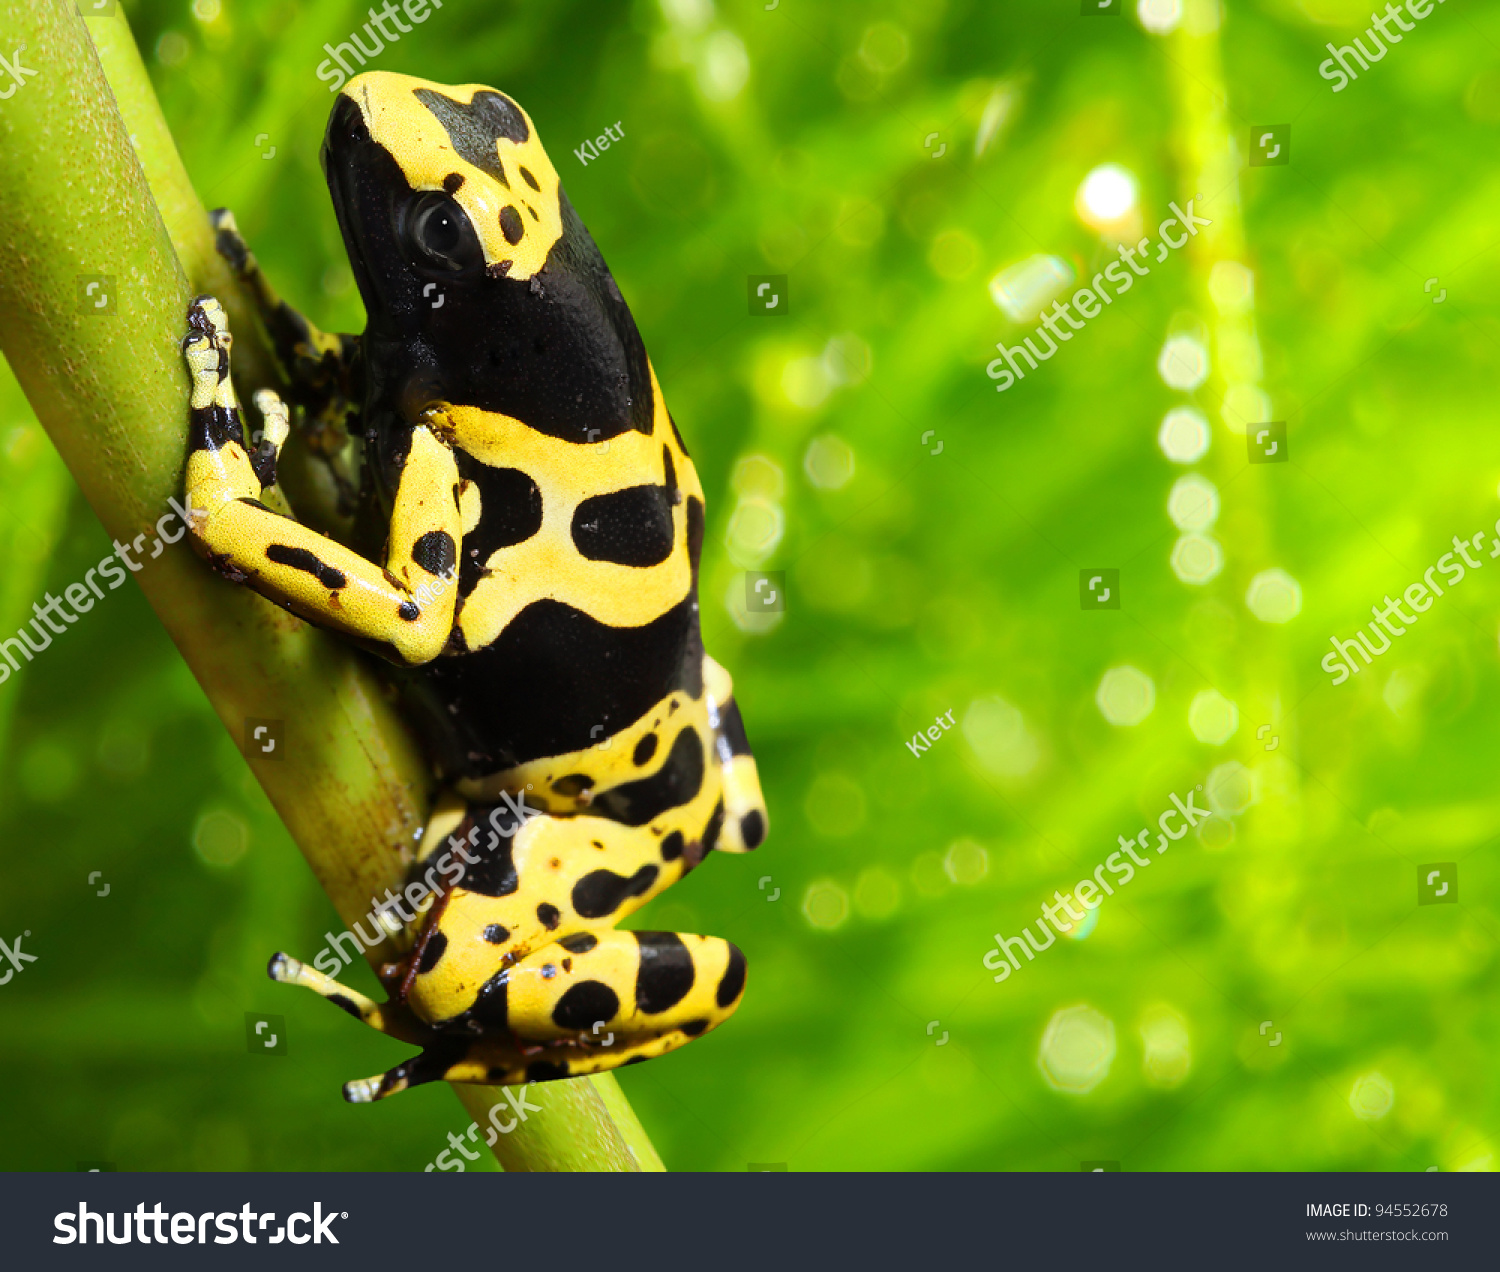 The Poison Dart Frog Dendrobates Leucomelas In A